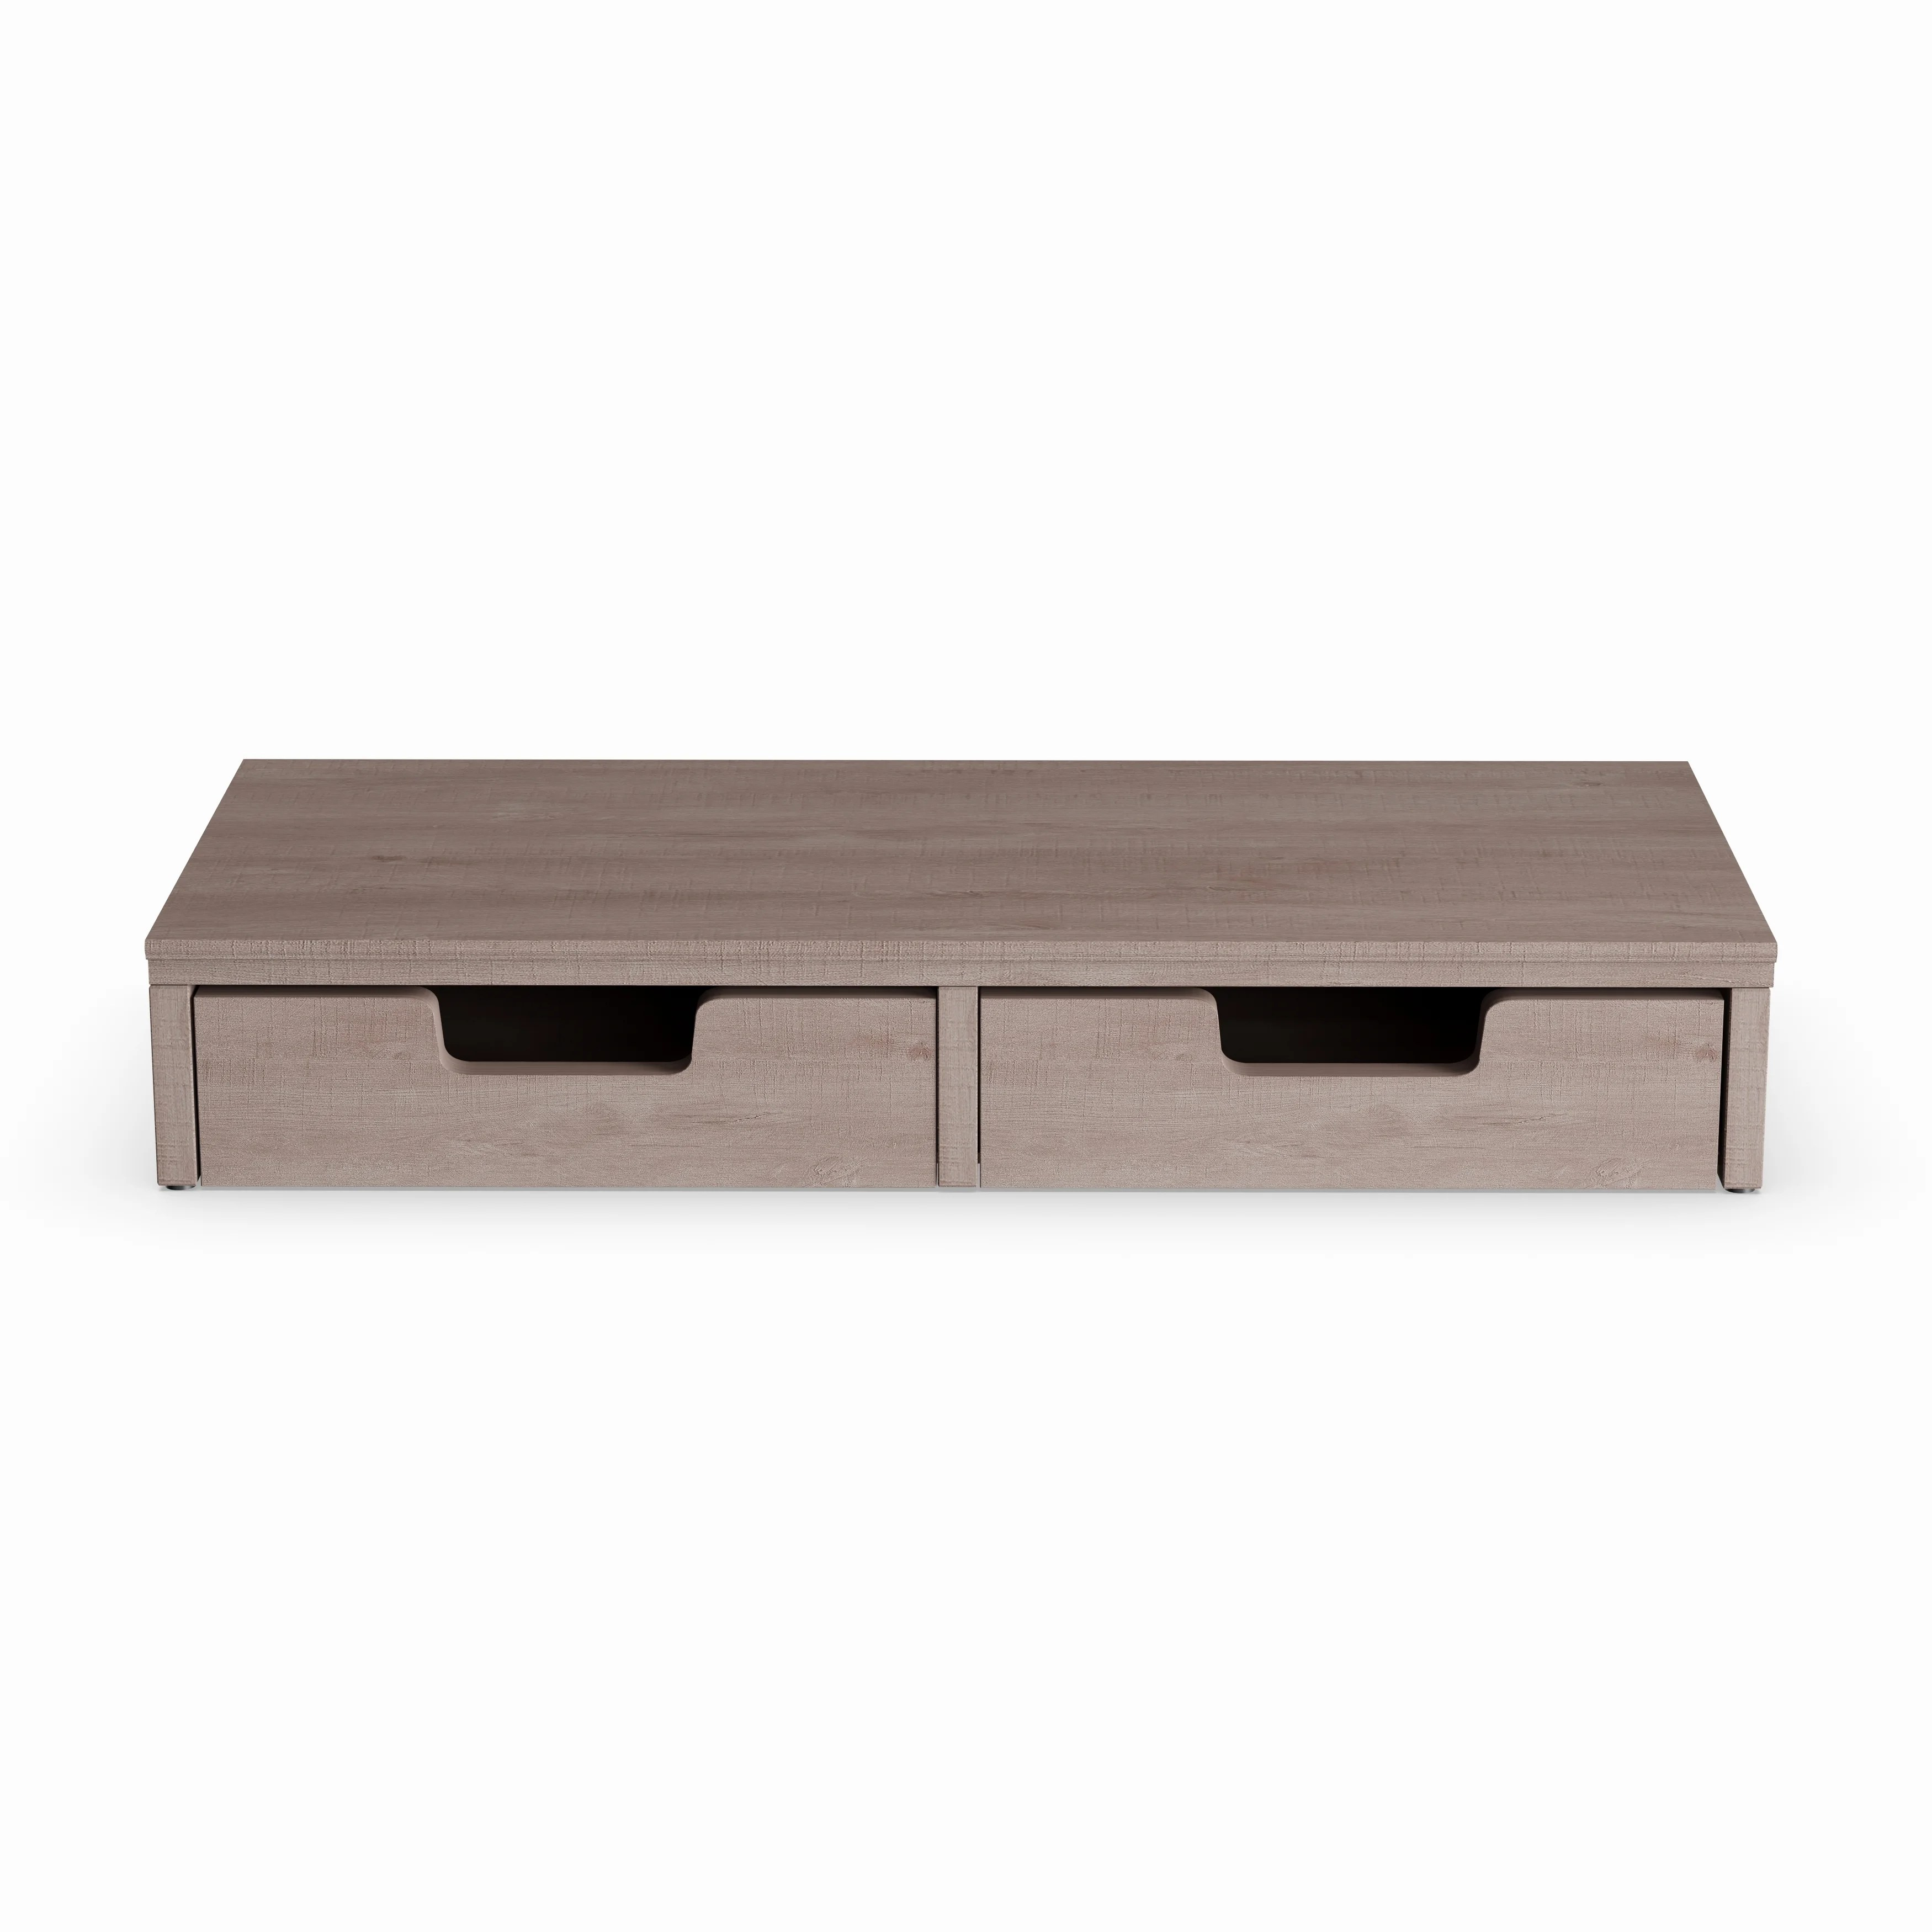 Desk Top Drawers Porch Den Tonti Desktop Organizer With Drawers